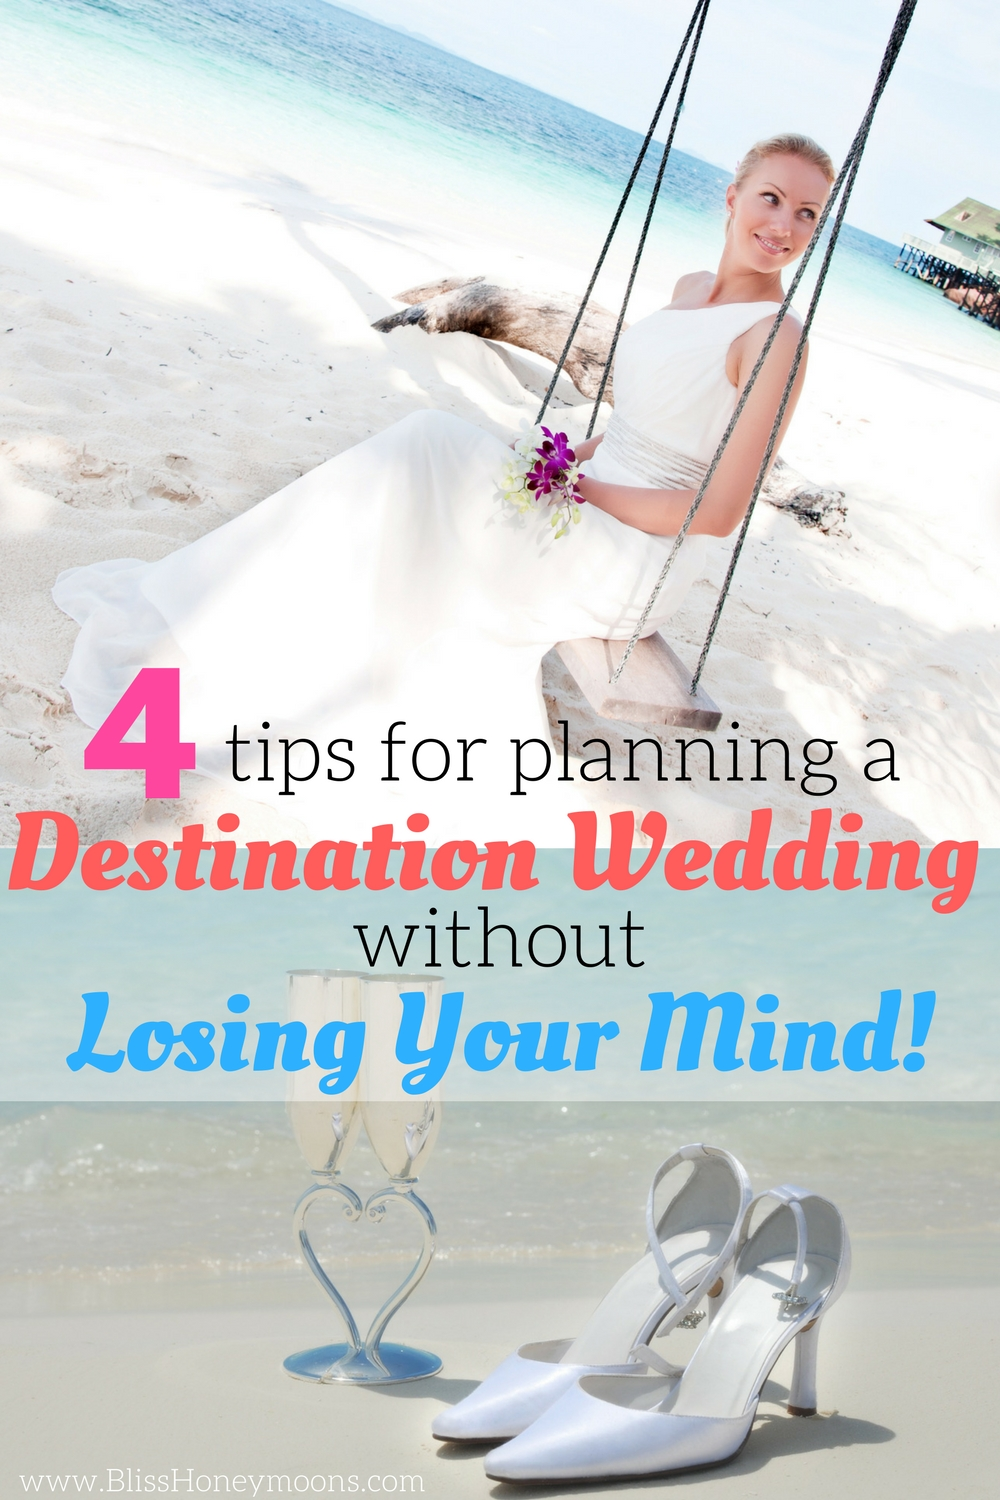 destination wedding planning tips, simple wedding planning, wedding de-stress, plan wedding less stress, low stress wedding planning, best destination wedding planning tips, top destination wedding planning tips, reduce stress wedding planning, Bliss Honeymoons review, best destination wedding travel agent